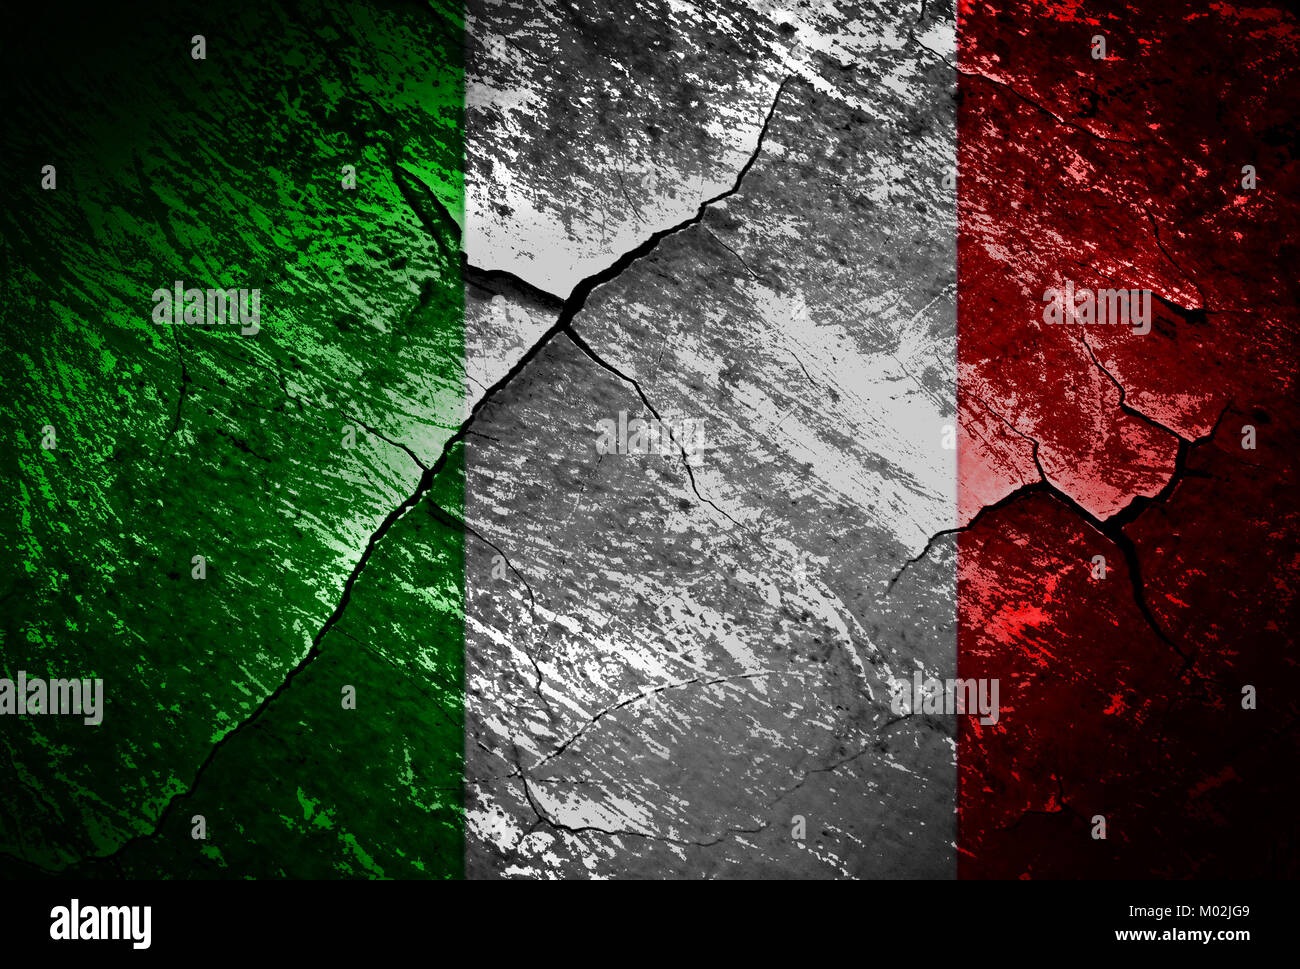 Italyg flag  grunge textures and backgrounds - Stock Image